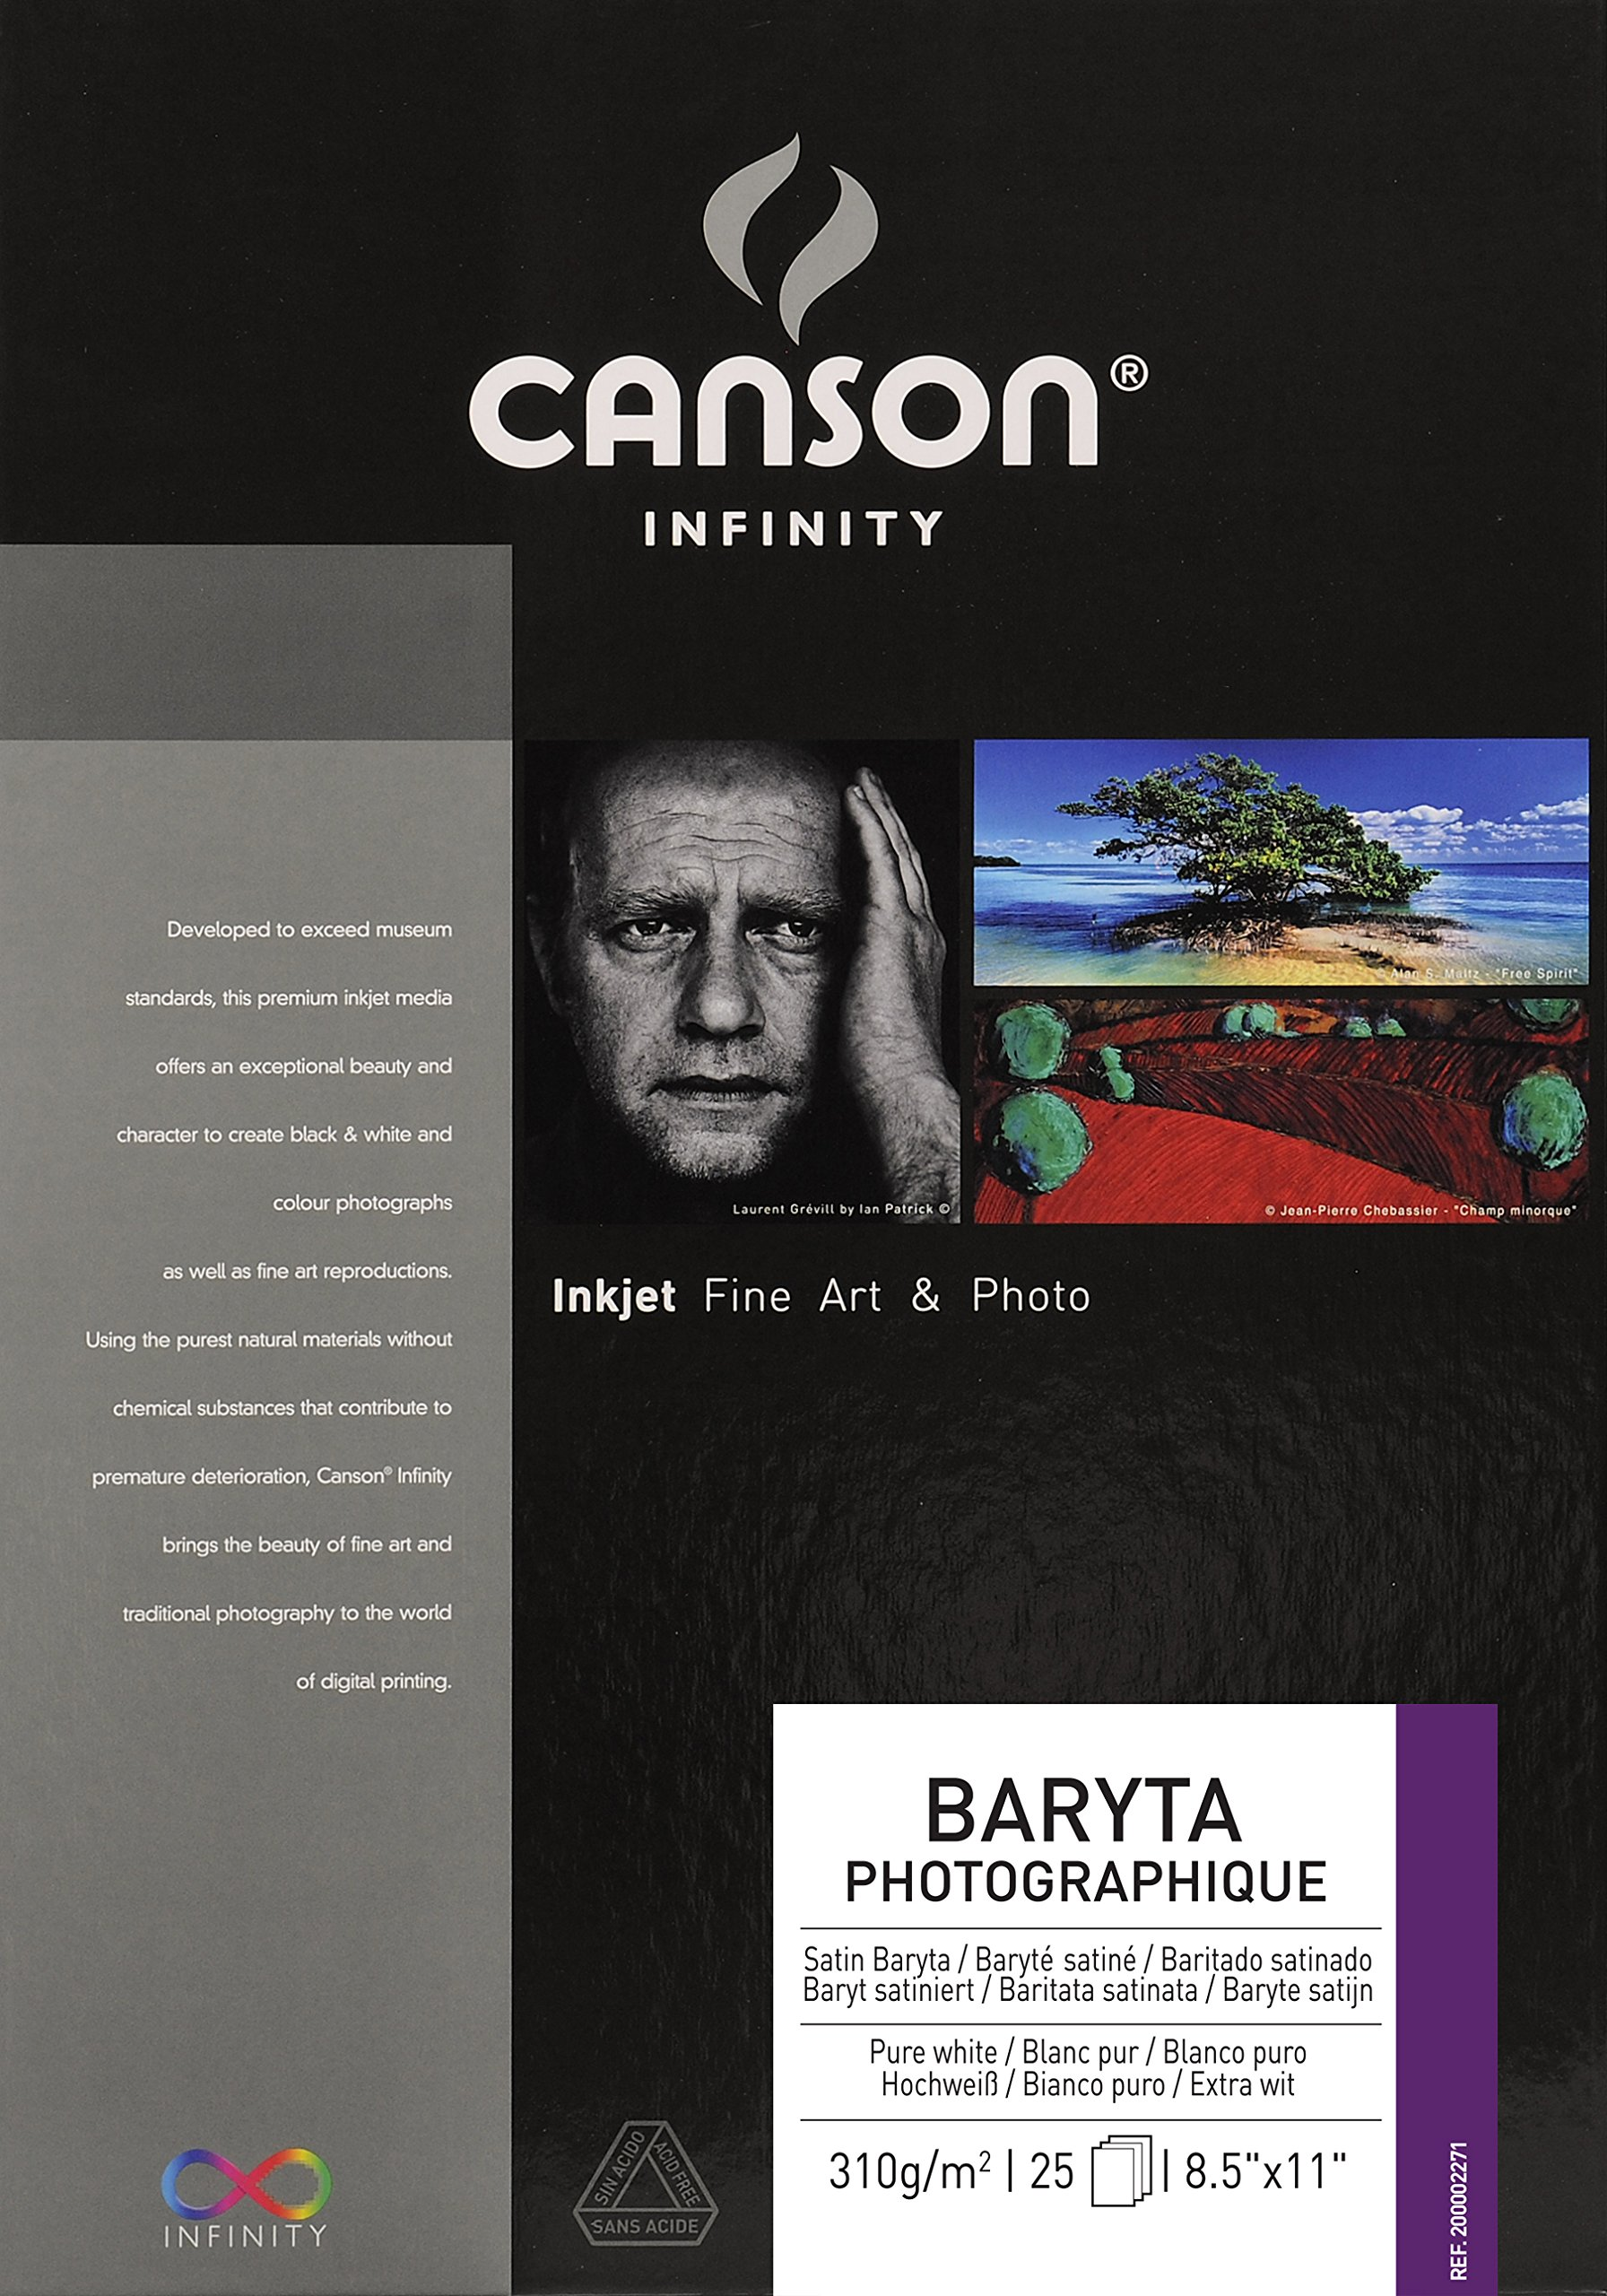 Canson Infinity Baryta Photographique Fine Art Photo Paper, Acid Free, Idea for Inkjet Portraits, 8.5 x 11 Inch, White, 25 Sheets